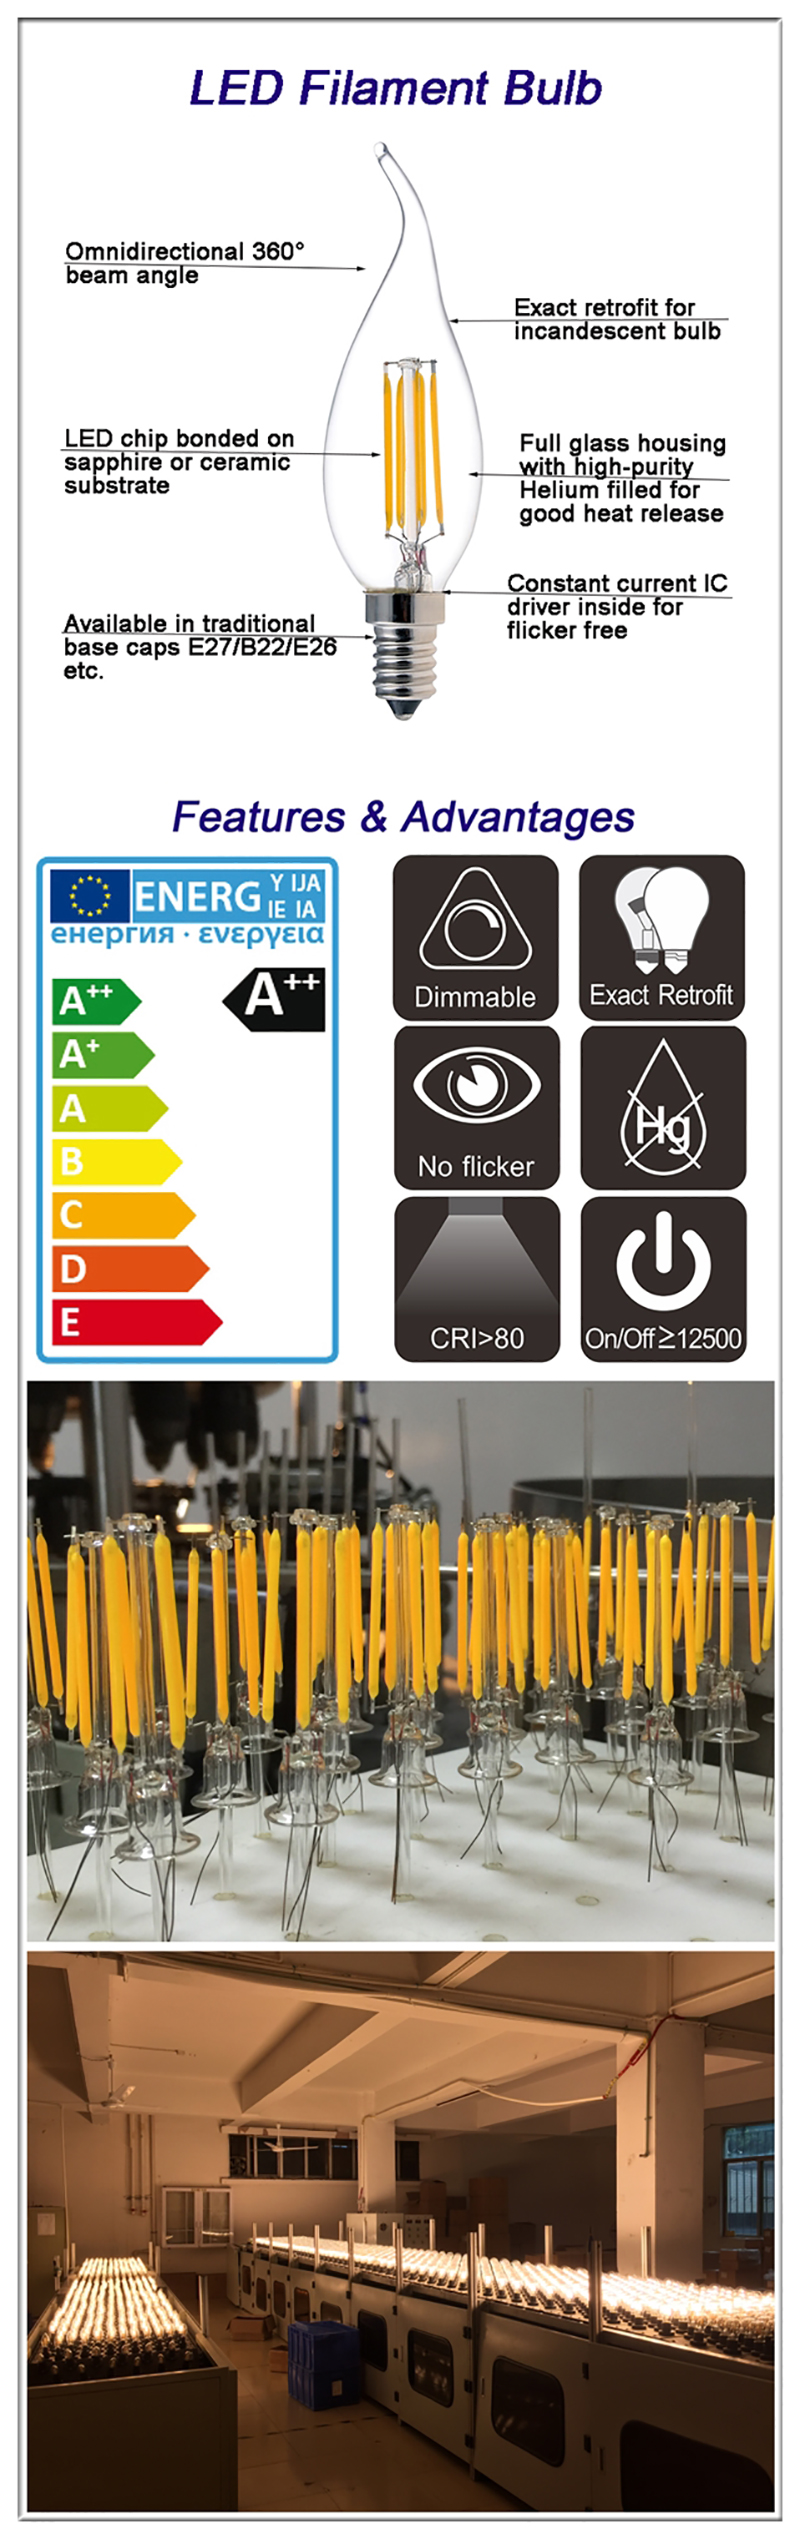 CA32 LED Filament Bulb supplier